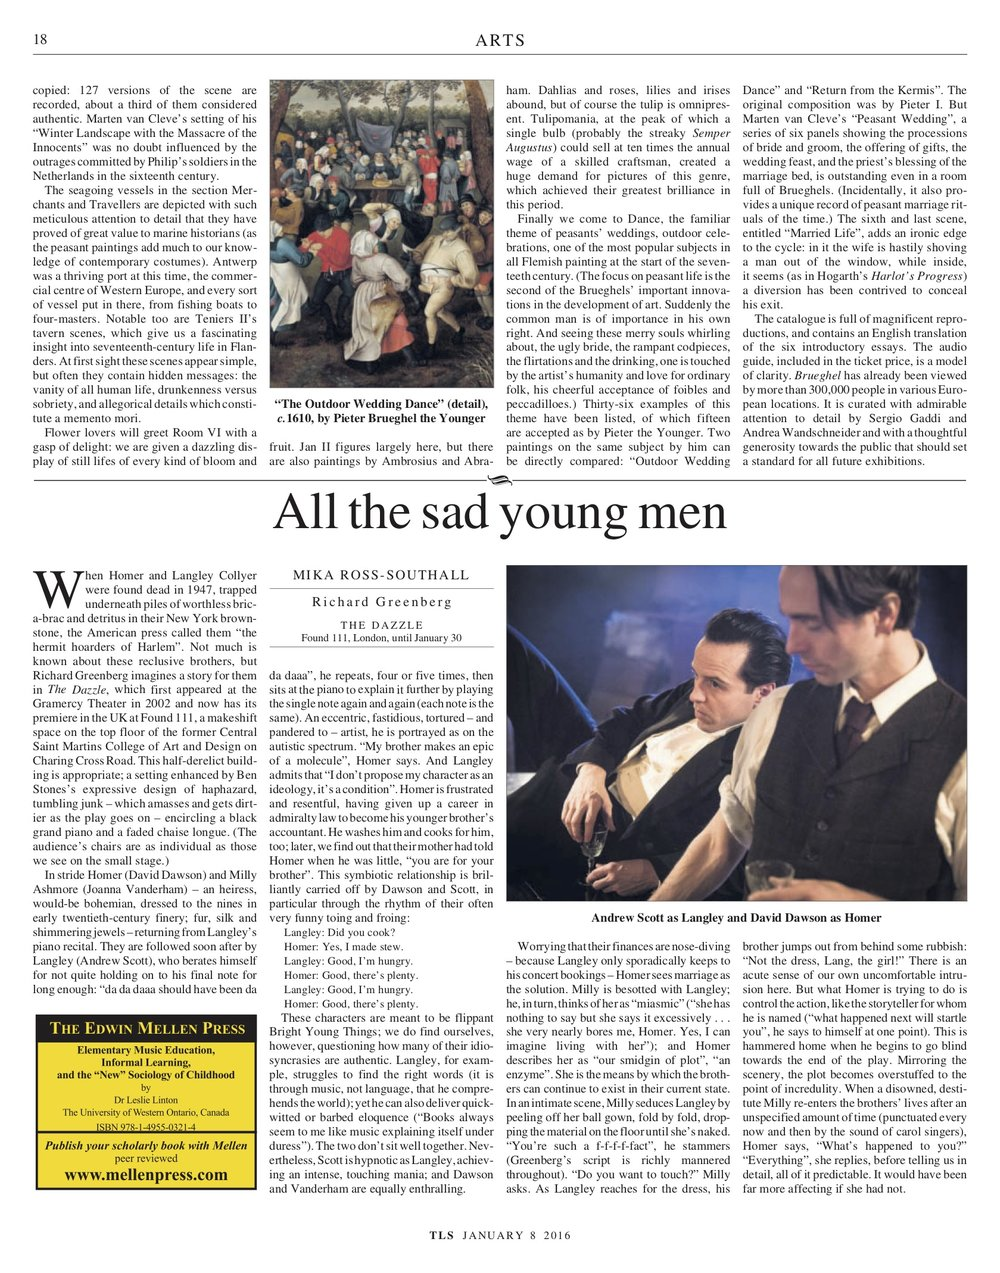 All the sad young men, Richard Greenberg, Published in The Times Literary Supplement, January 8, 2016